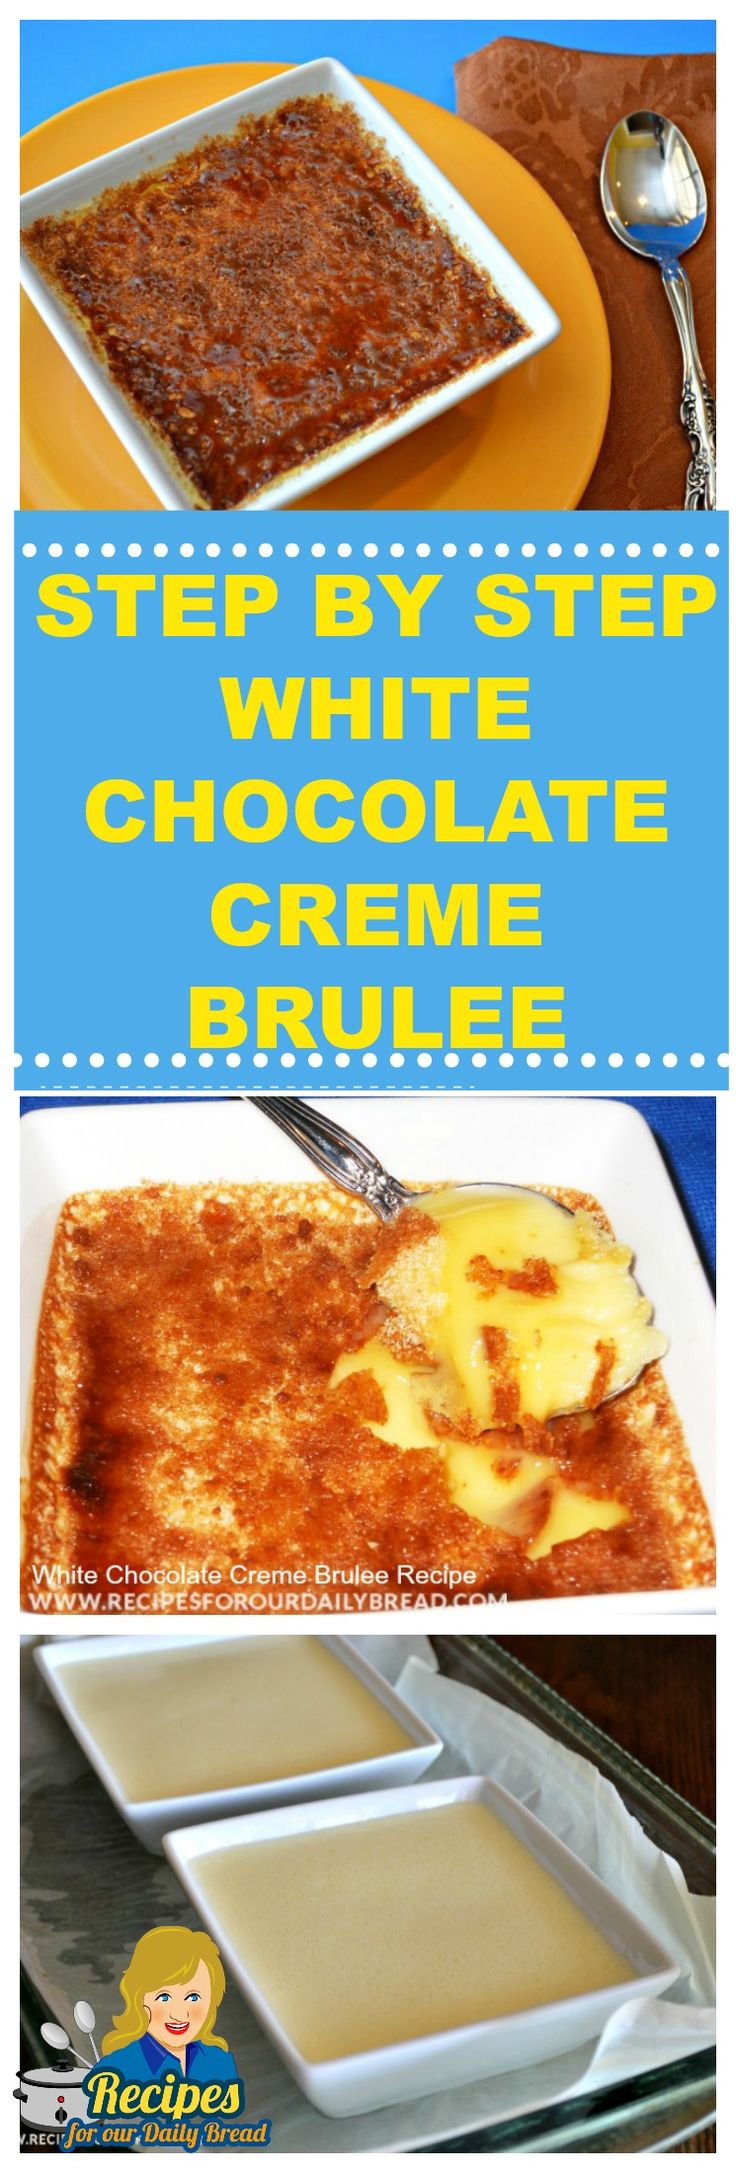 White Chocolate Creme Brulee Recipe -This White Chocolate Creme Bruleeis one of the best desserts I have ever eaten. Do you want an extra special dessert? Date Night? Valentine's Day? Anniversary? Birthday? This is the dessert for you. This post will give you Step By Step instructions to making an over the top perfect Creme Brulee.